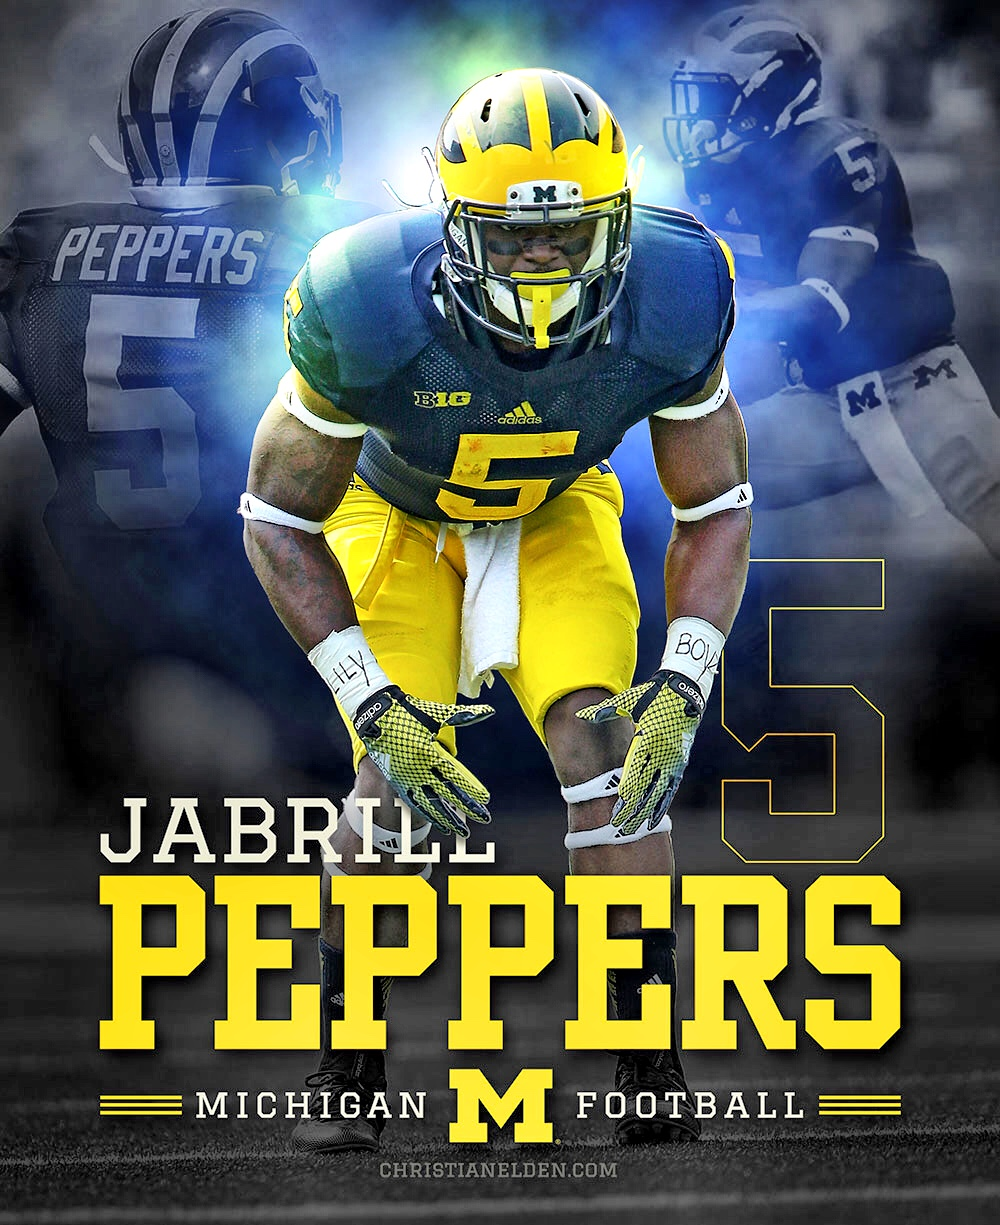 Jabrill Peppers Photoshop Design | christianelden.com